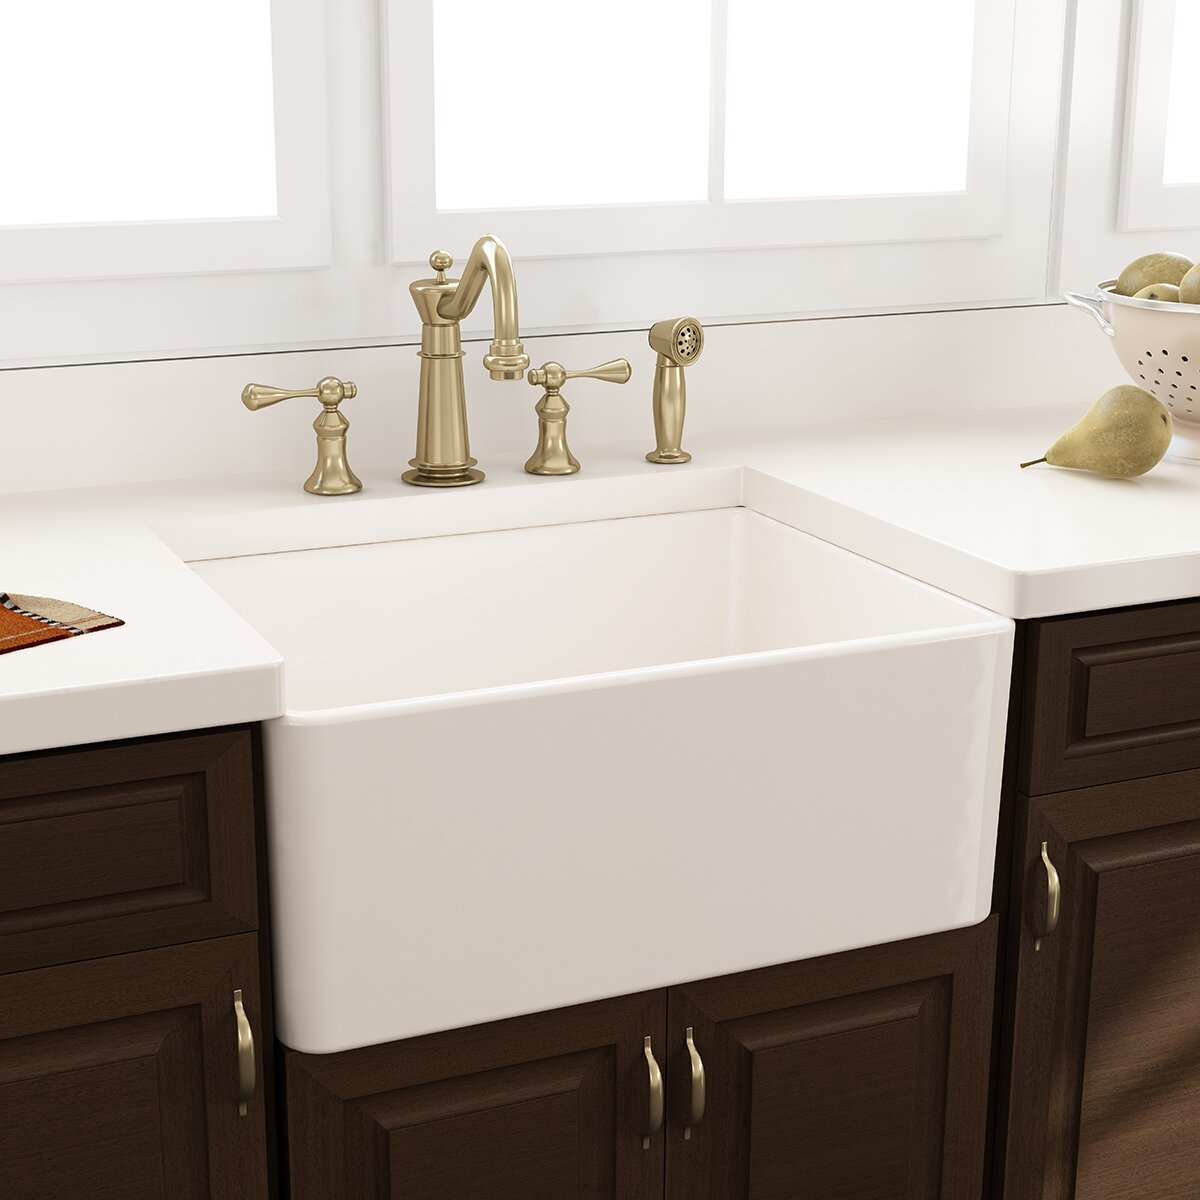 ... Fireclay Farmhouse Kitchen Sink with Grid and Drain by Nantucket Sinks